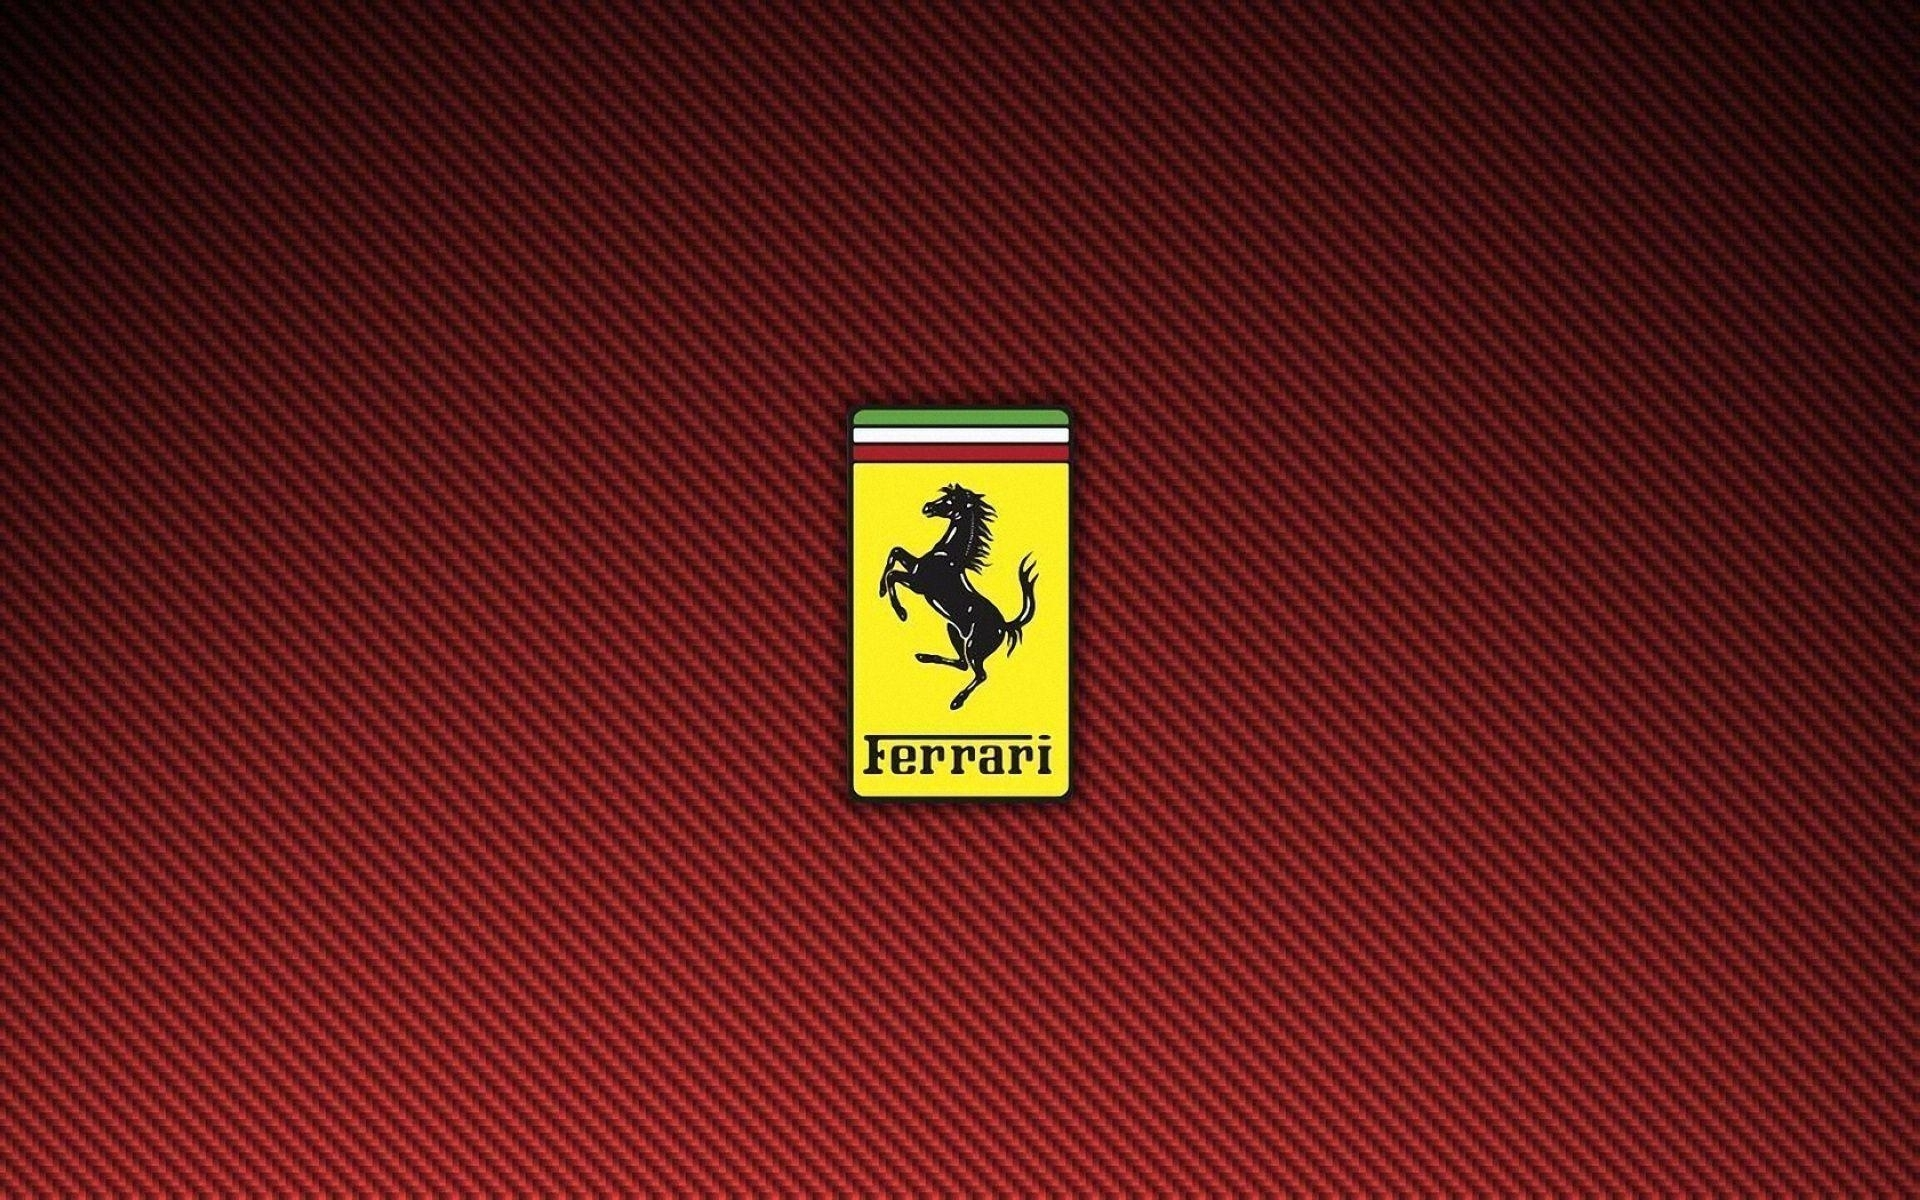 ferrari logo wallpapers - wallpaper cave